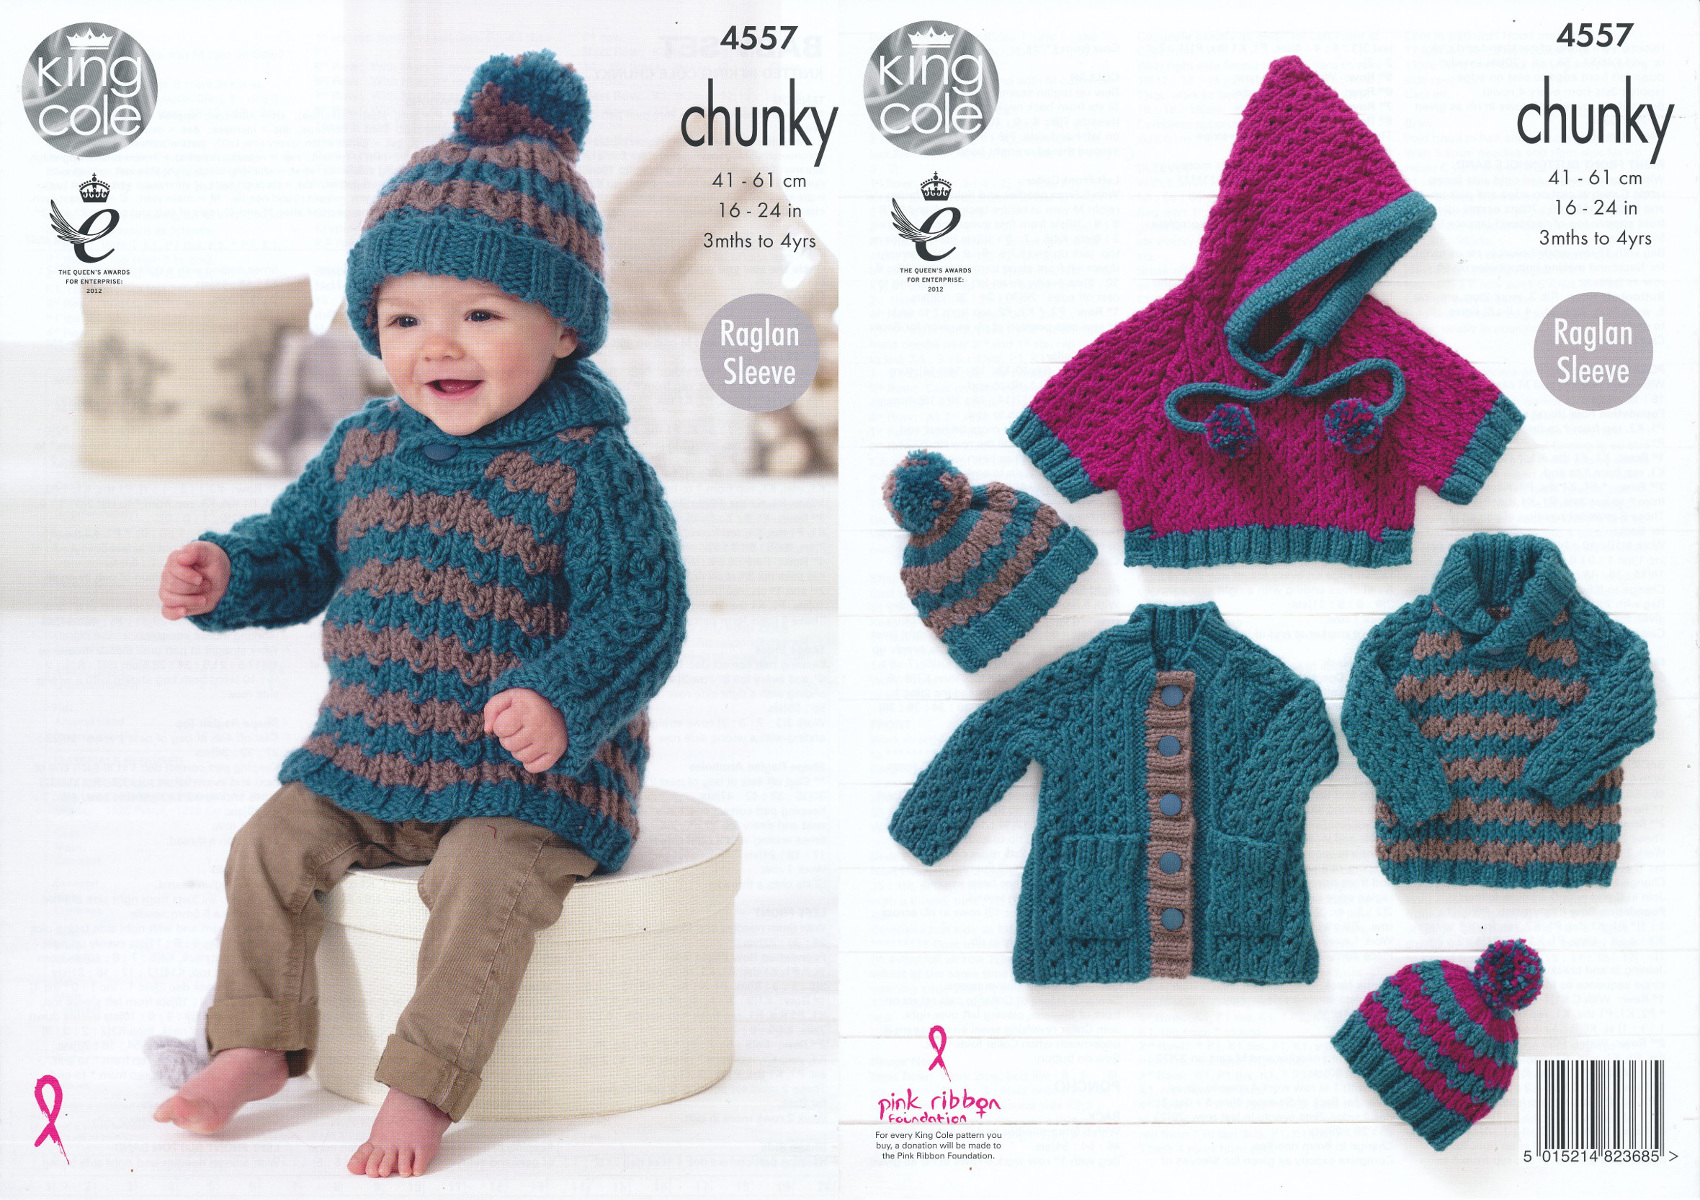 Poncho Knitting Pattern Chunky Details About Chunky Knit Knitting Pattern King Cole Ba Coat Jumper Poncho Hat Set 4557